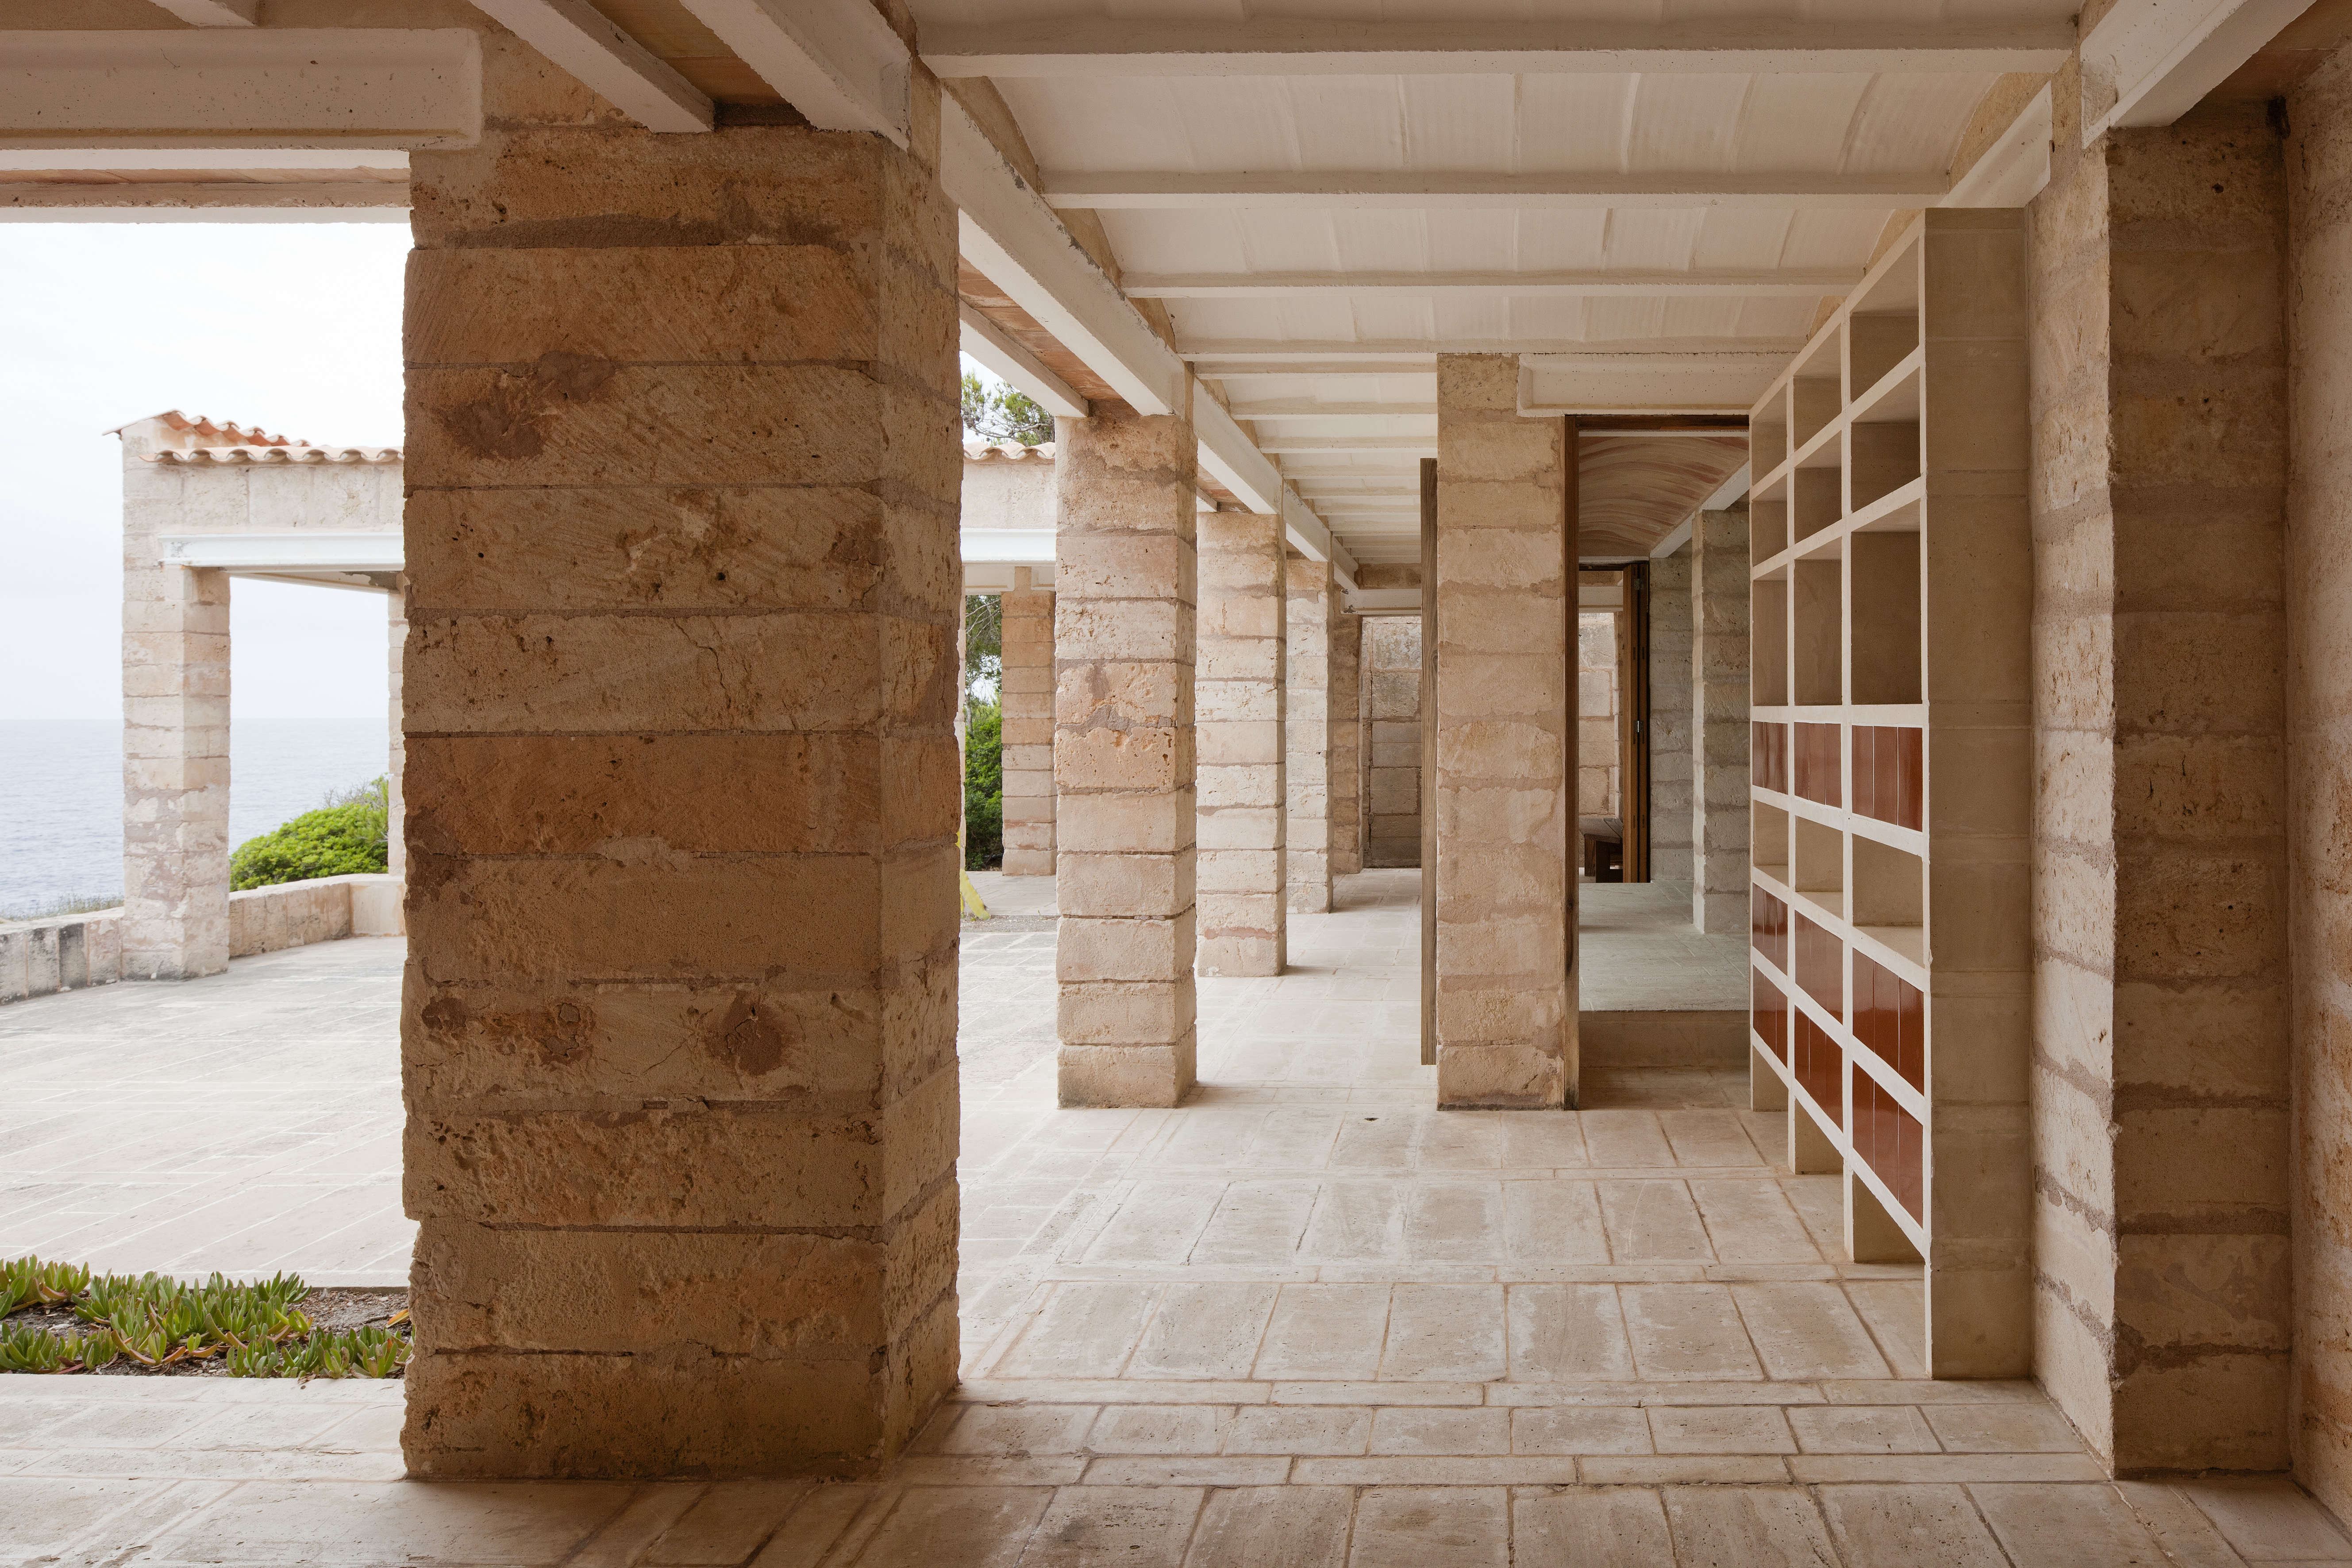 Because Can Lis is a stone's throw from the sea and thus privy to hard weather conditions, Utzon chose local, sustainable materials for practical purposes.